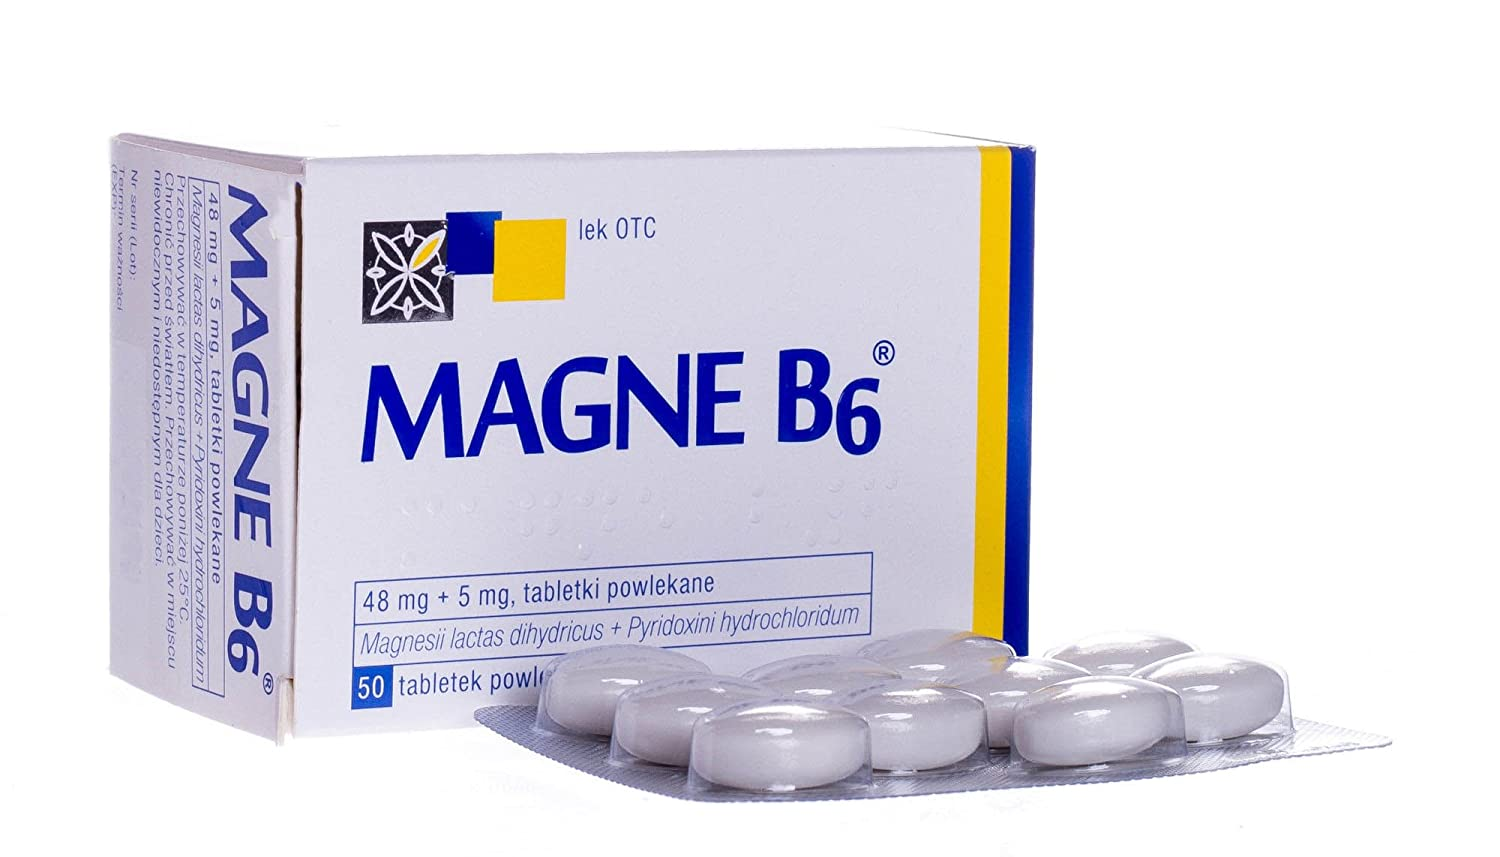 Amazon.com: 2 x MAGNE B6-50 tablets - Magnesium 48mg + Vit B6 5mg - TOTAL 100 Tabs: Health & Personal Care